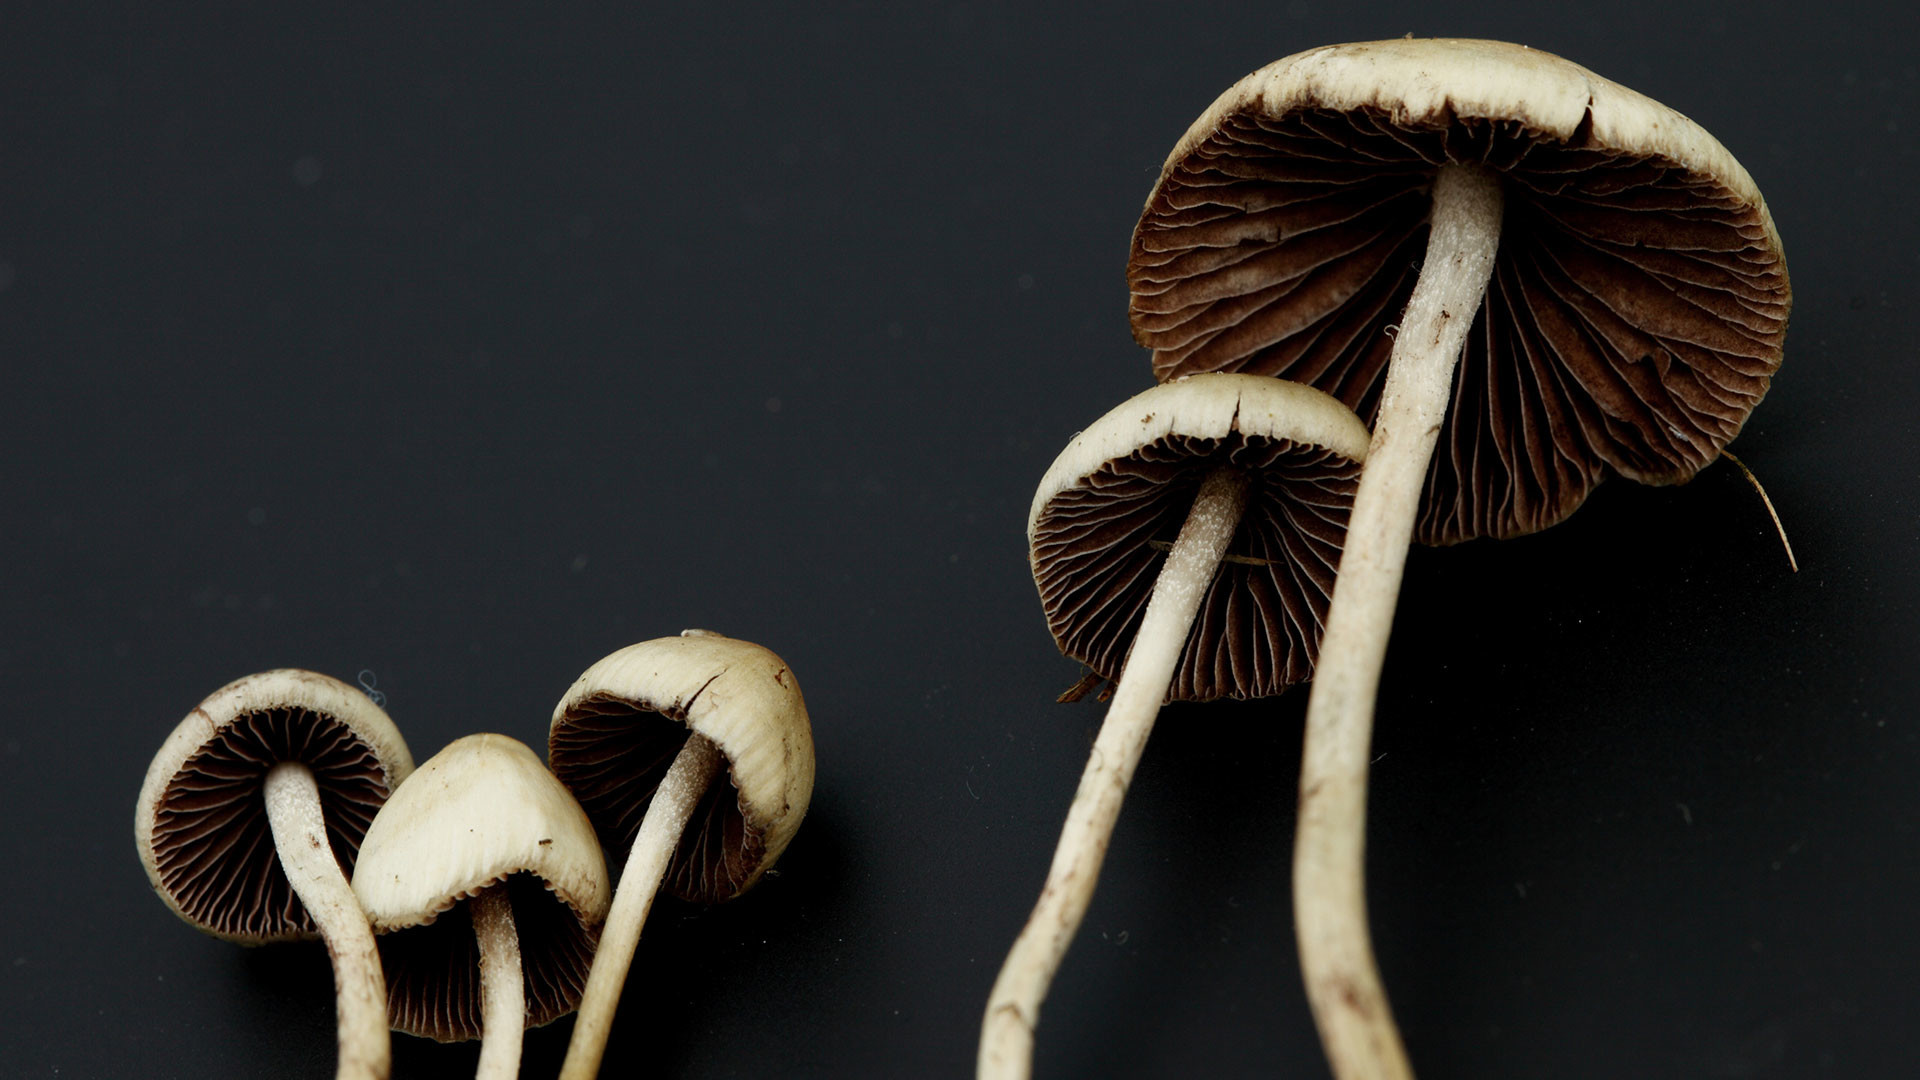 1920x1080 Trying to quit smoking? Magic mushrooms might help